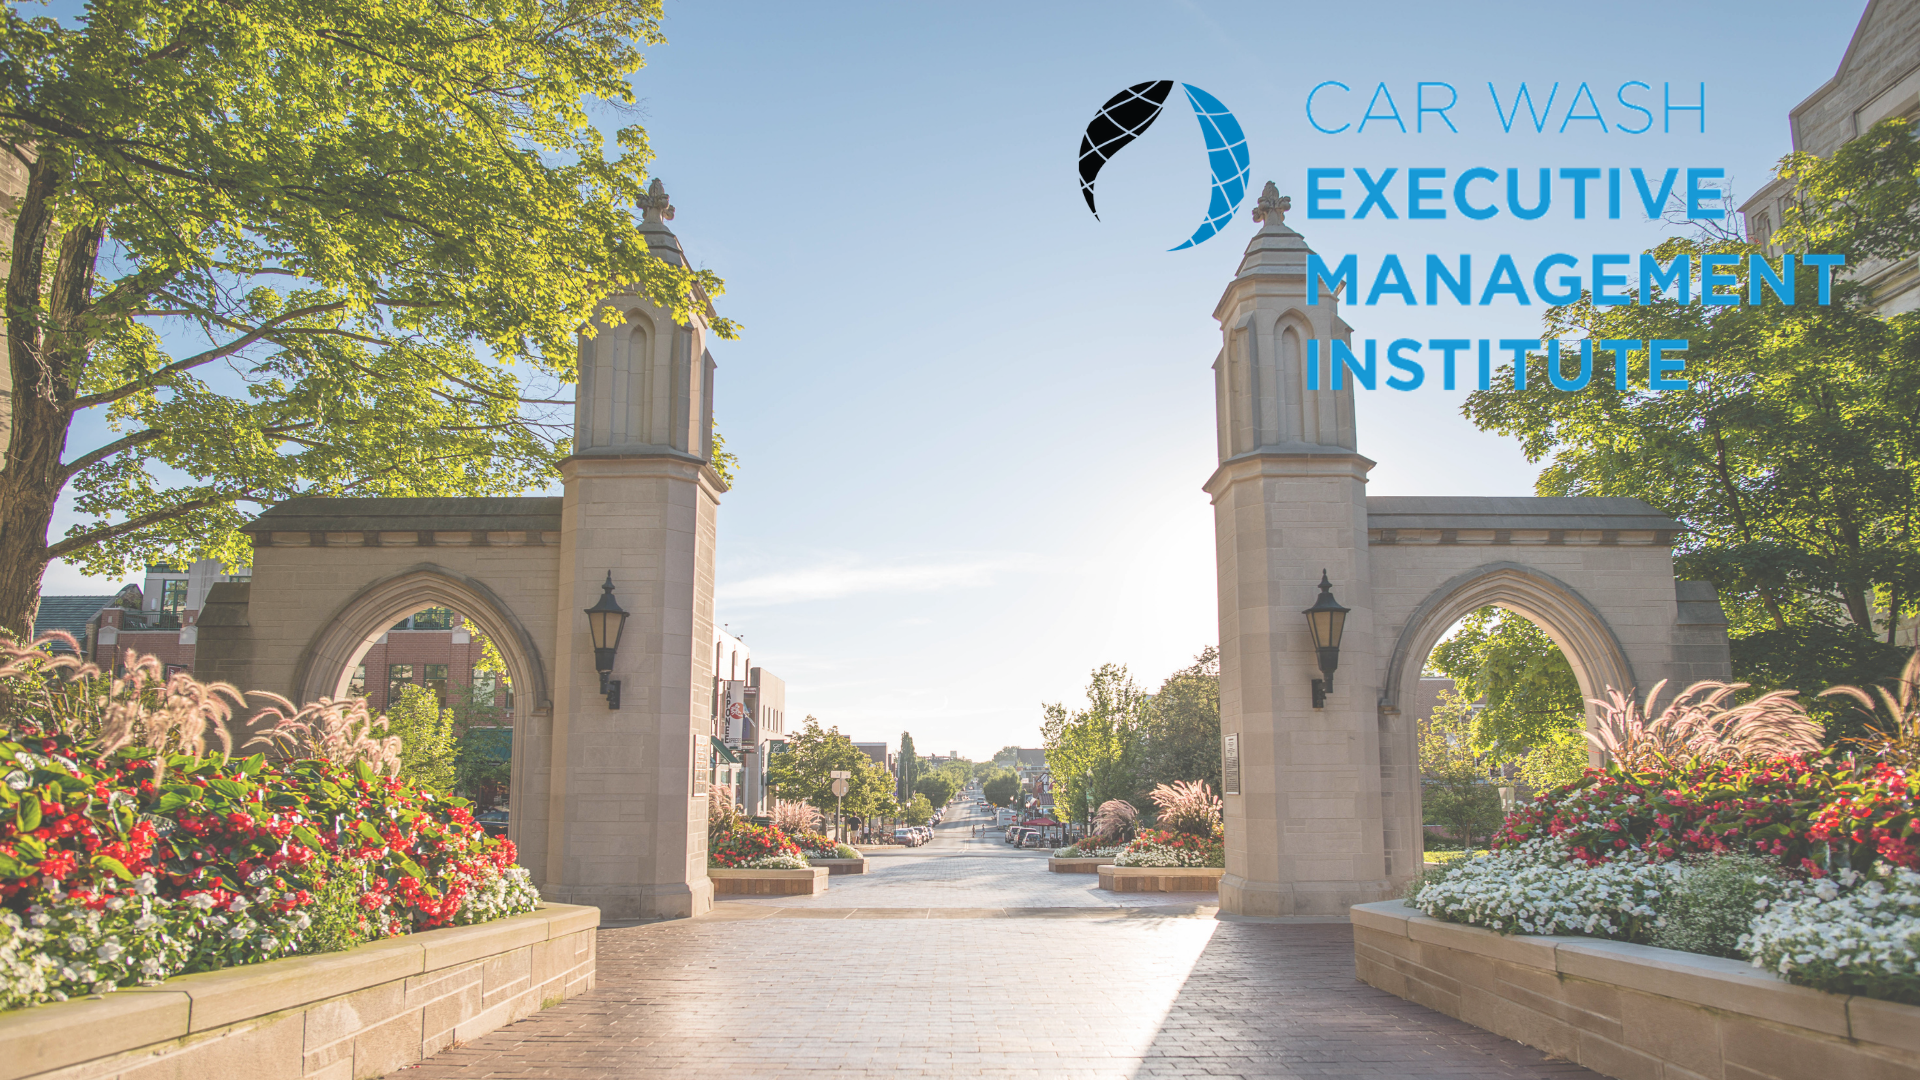 Car Wash Executive Management Institute